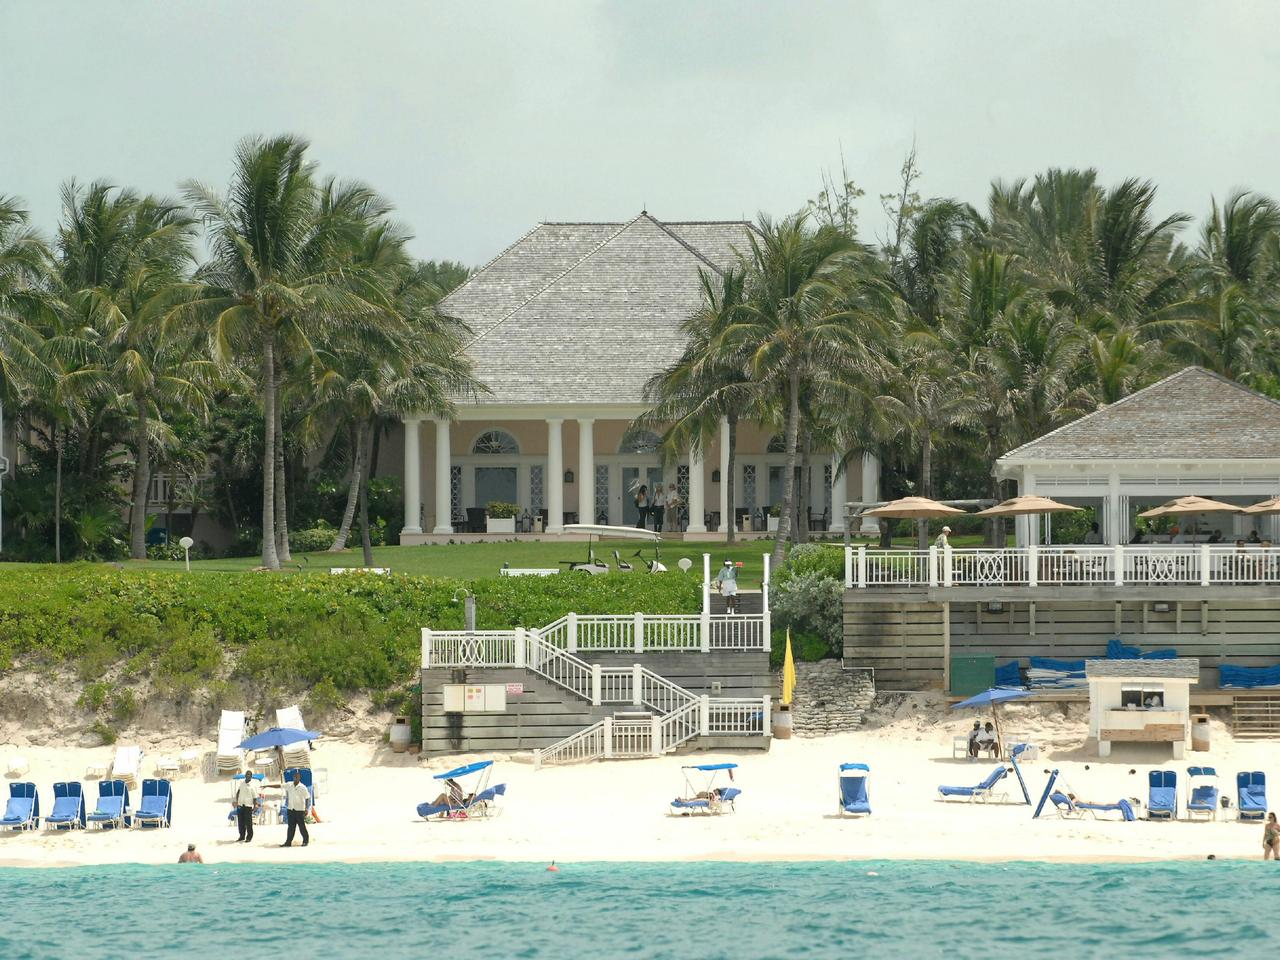 The One and Only Beach Club, part of the Ocean Club Hotel on Paradise Island, the Bahamas, where golfer Greg Norman and former tennis player Chris Evert are due to be married.